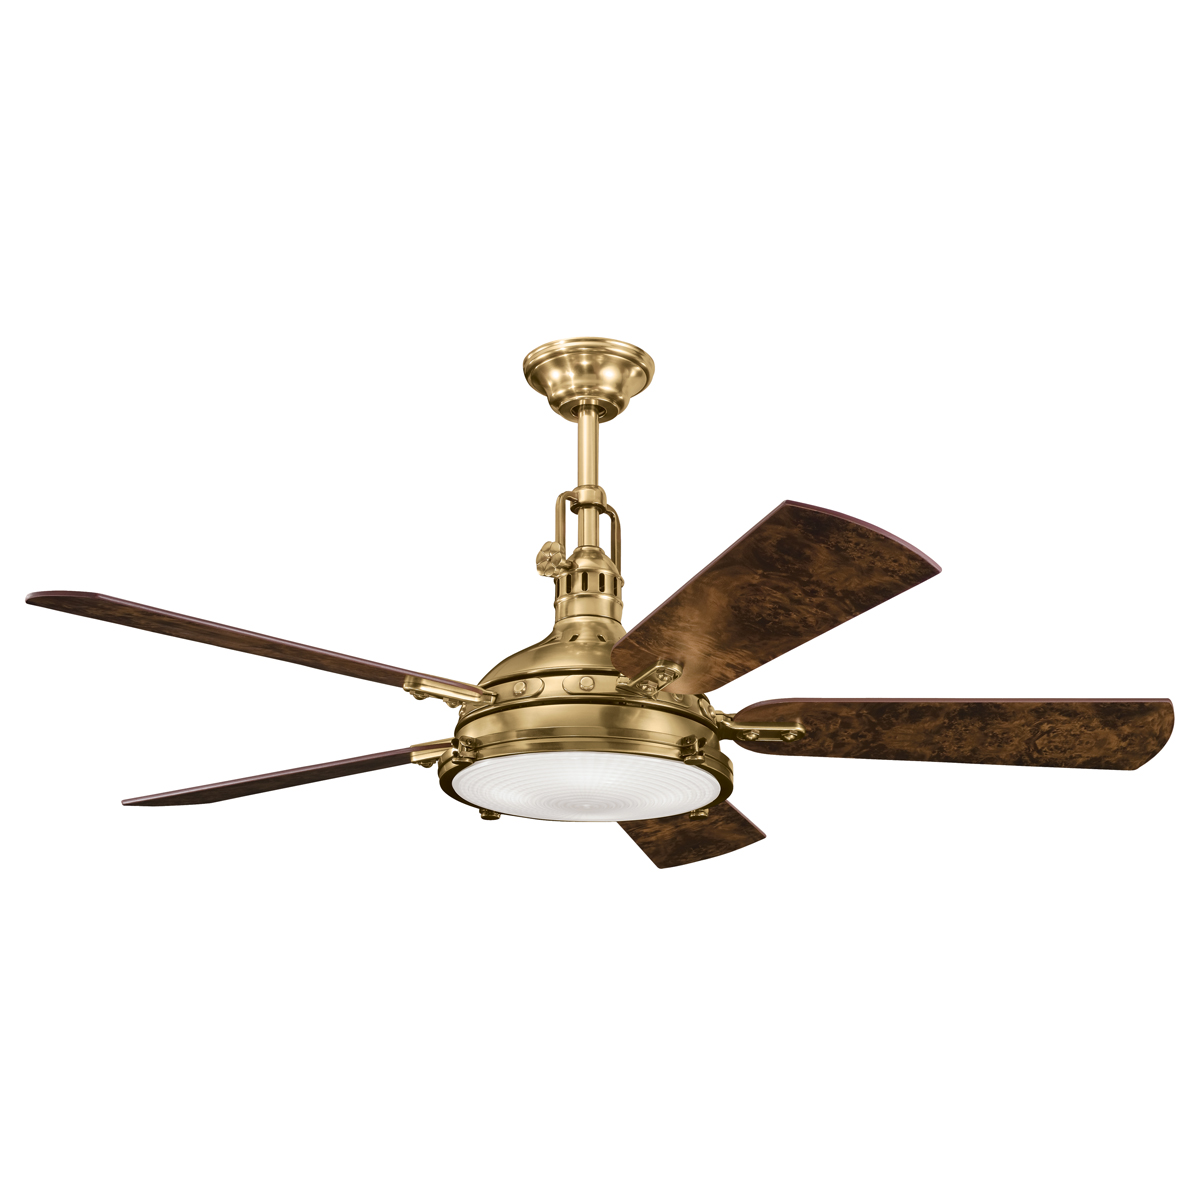 Vintage Looking Fans Hatteras Bay 56 Quot Burnished Antique Brass Ceiling Fan With